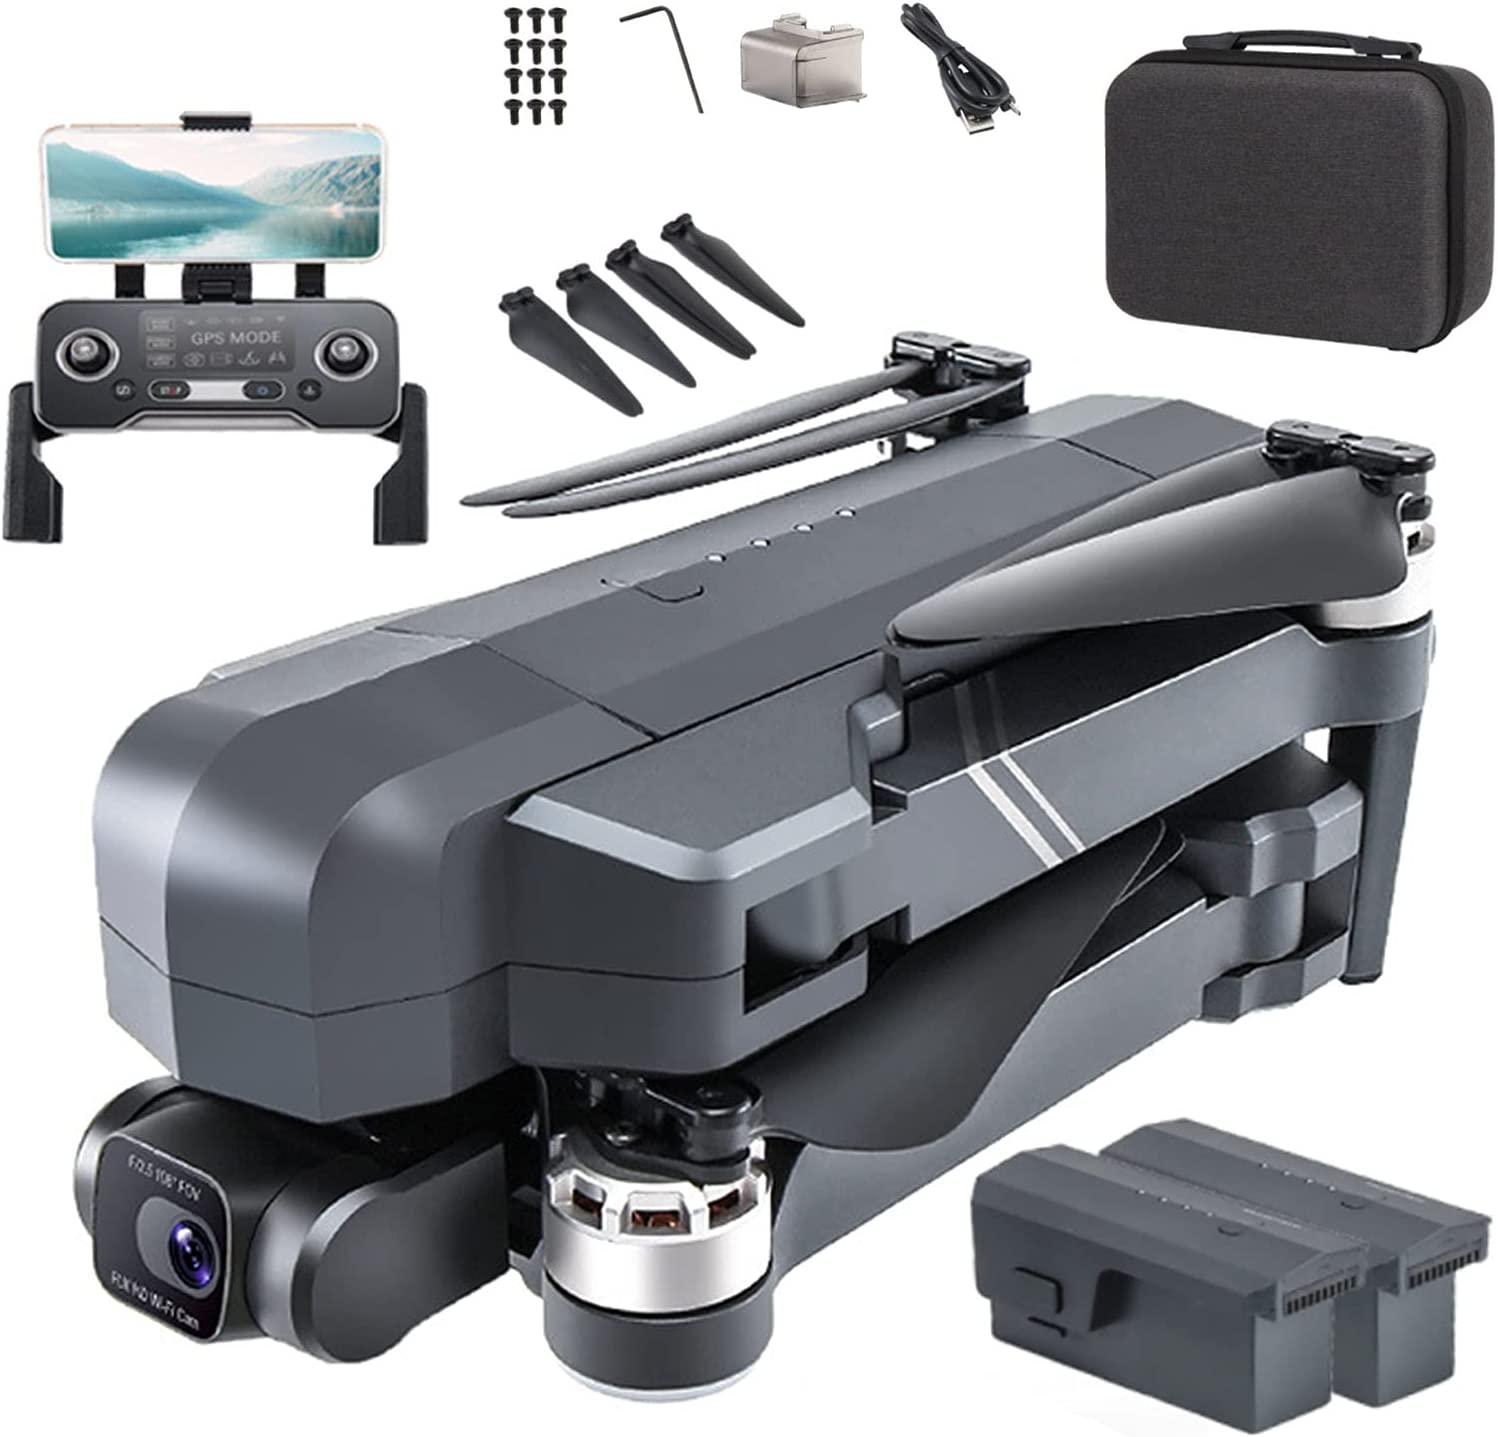 UAUA Ultralight and Foldable Drone Gimbal with 4K Ca Quadcopter Max 69% OFF Max 60% OFF